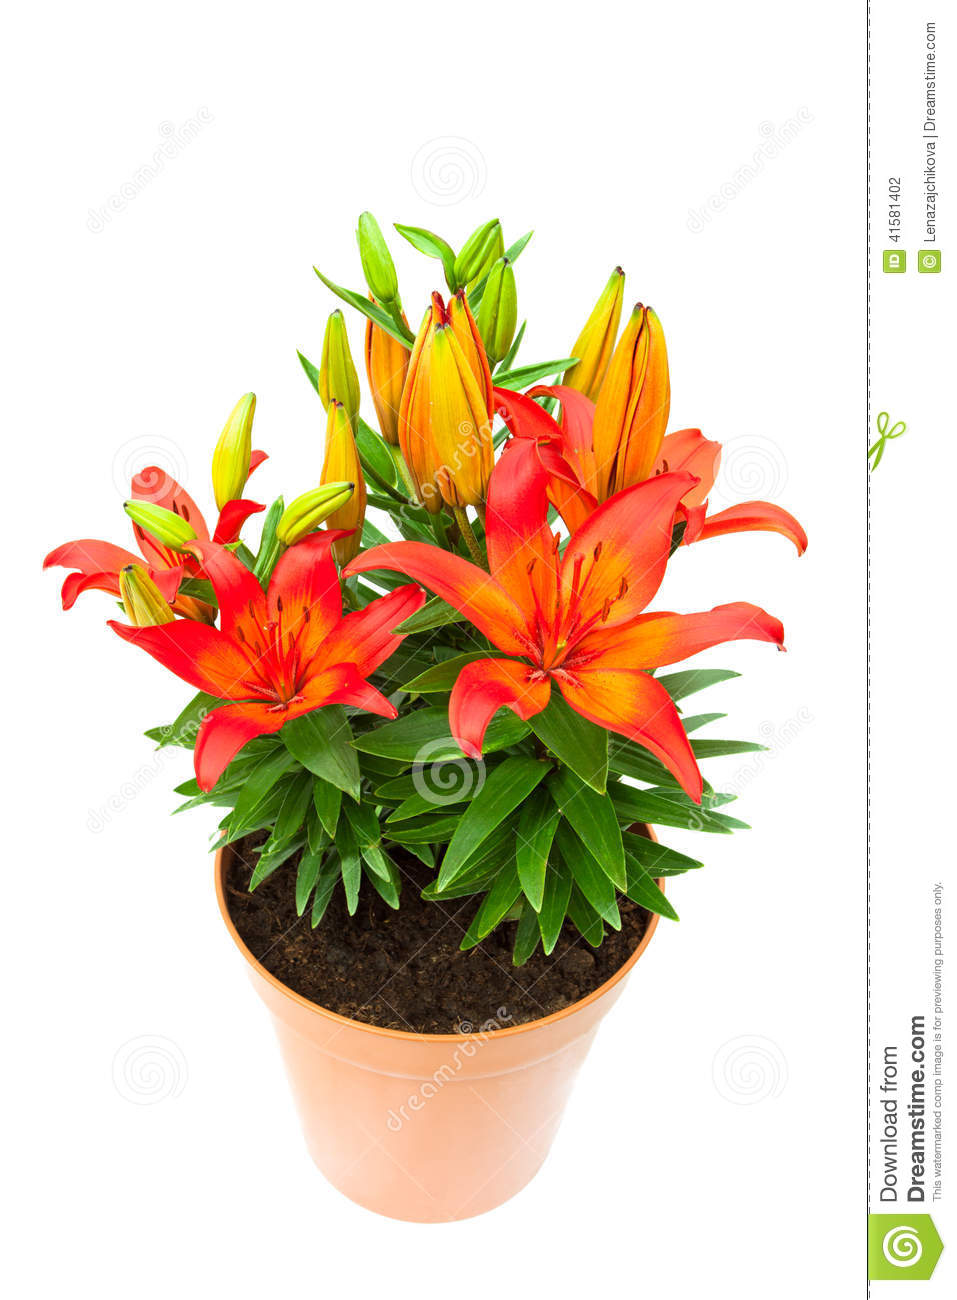 Red lily flowers in the pot isolated image stock photo for Plante de pot exterieur